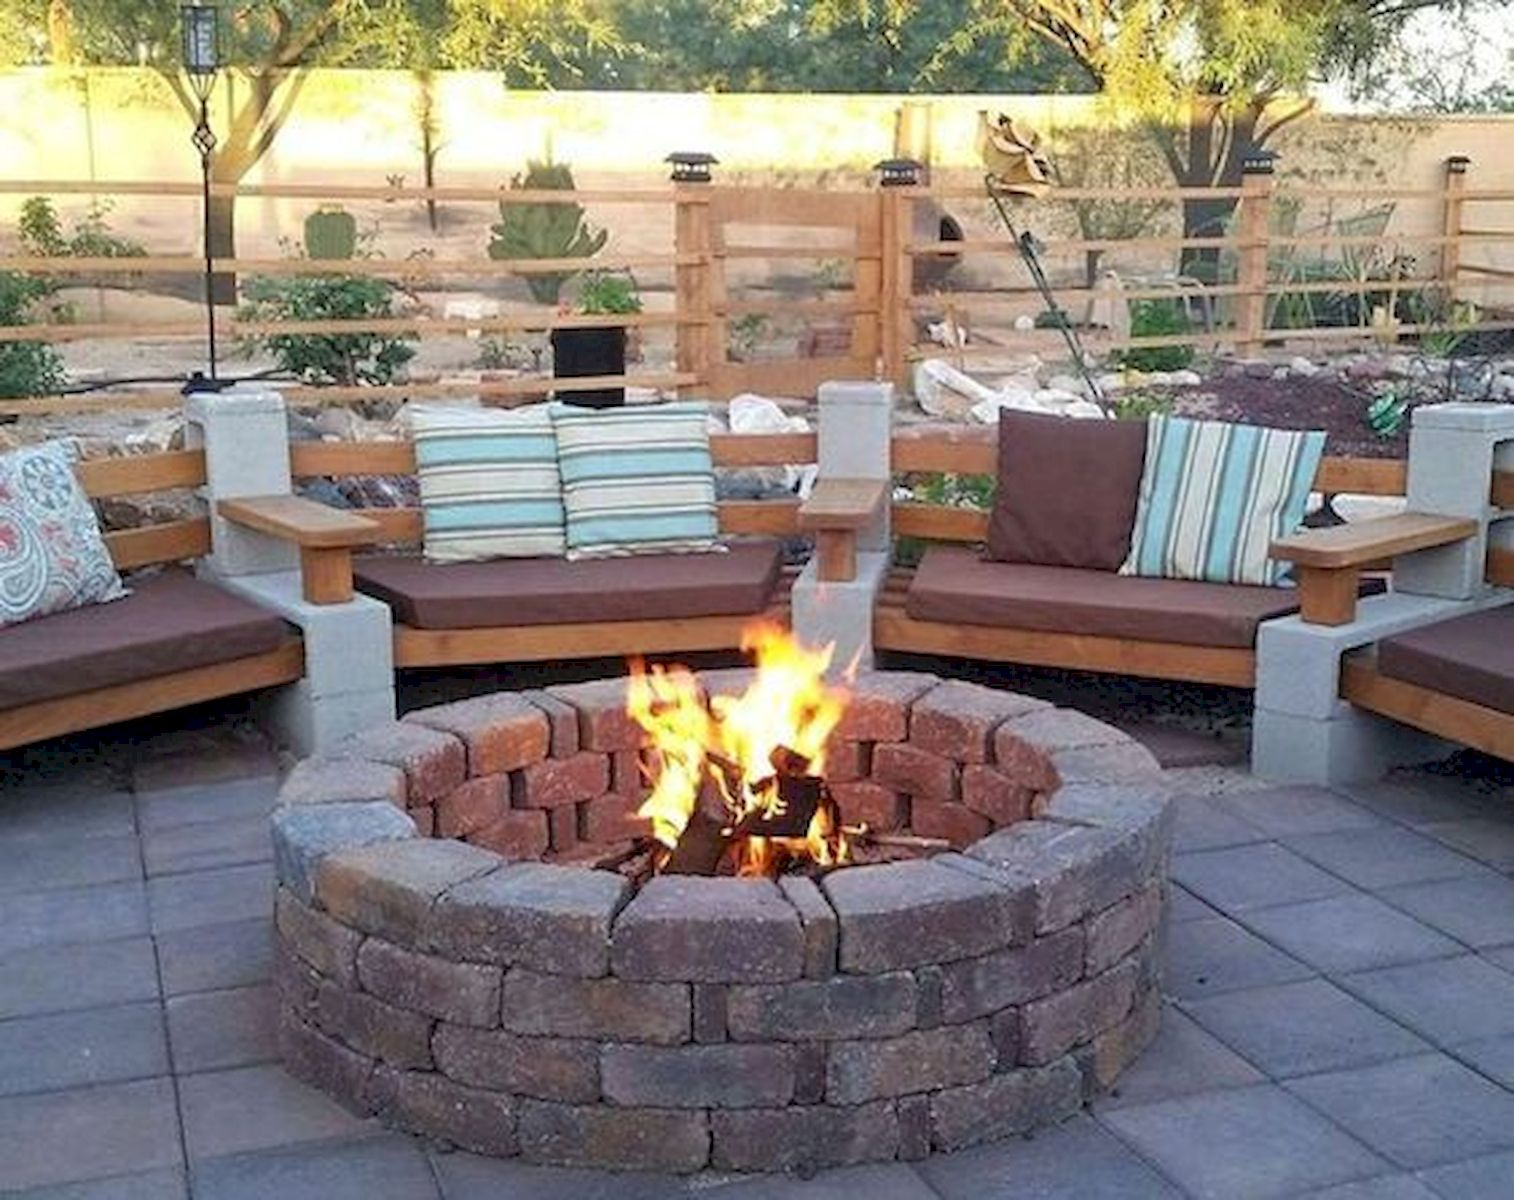 60 Amazing DIY Outdoor and Backyard Fire Pit Ideas On A ... on Outdoor Fire Pit Ideas id=76825